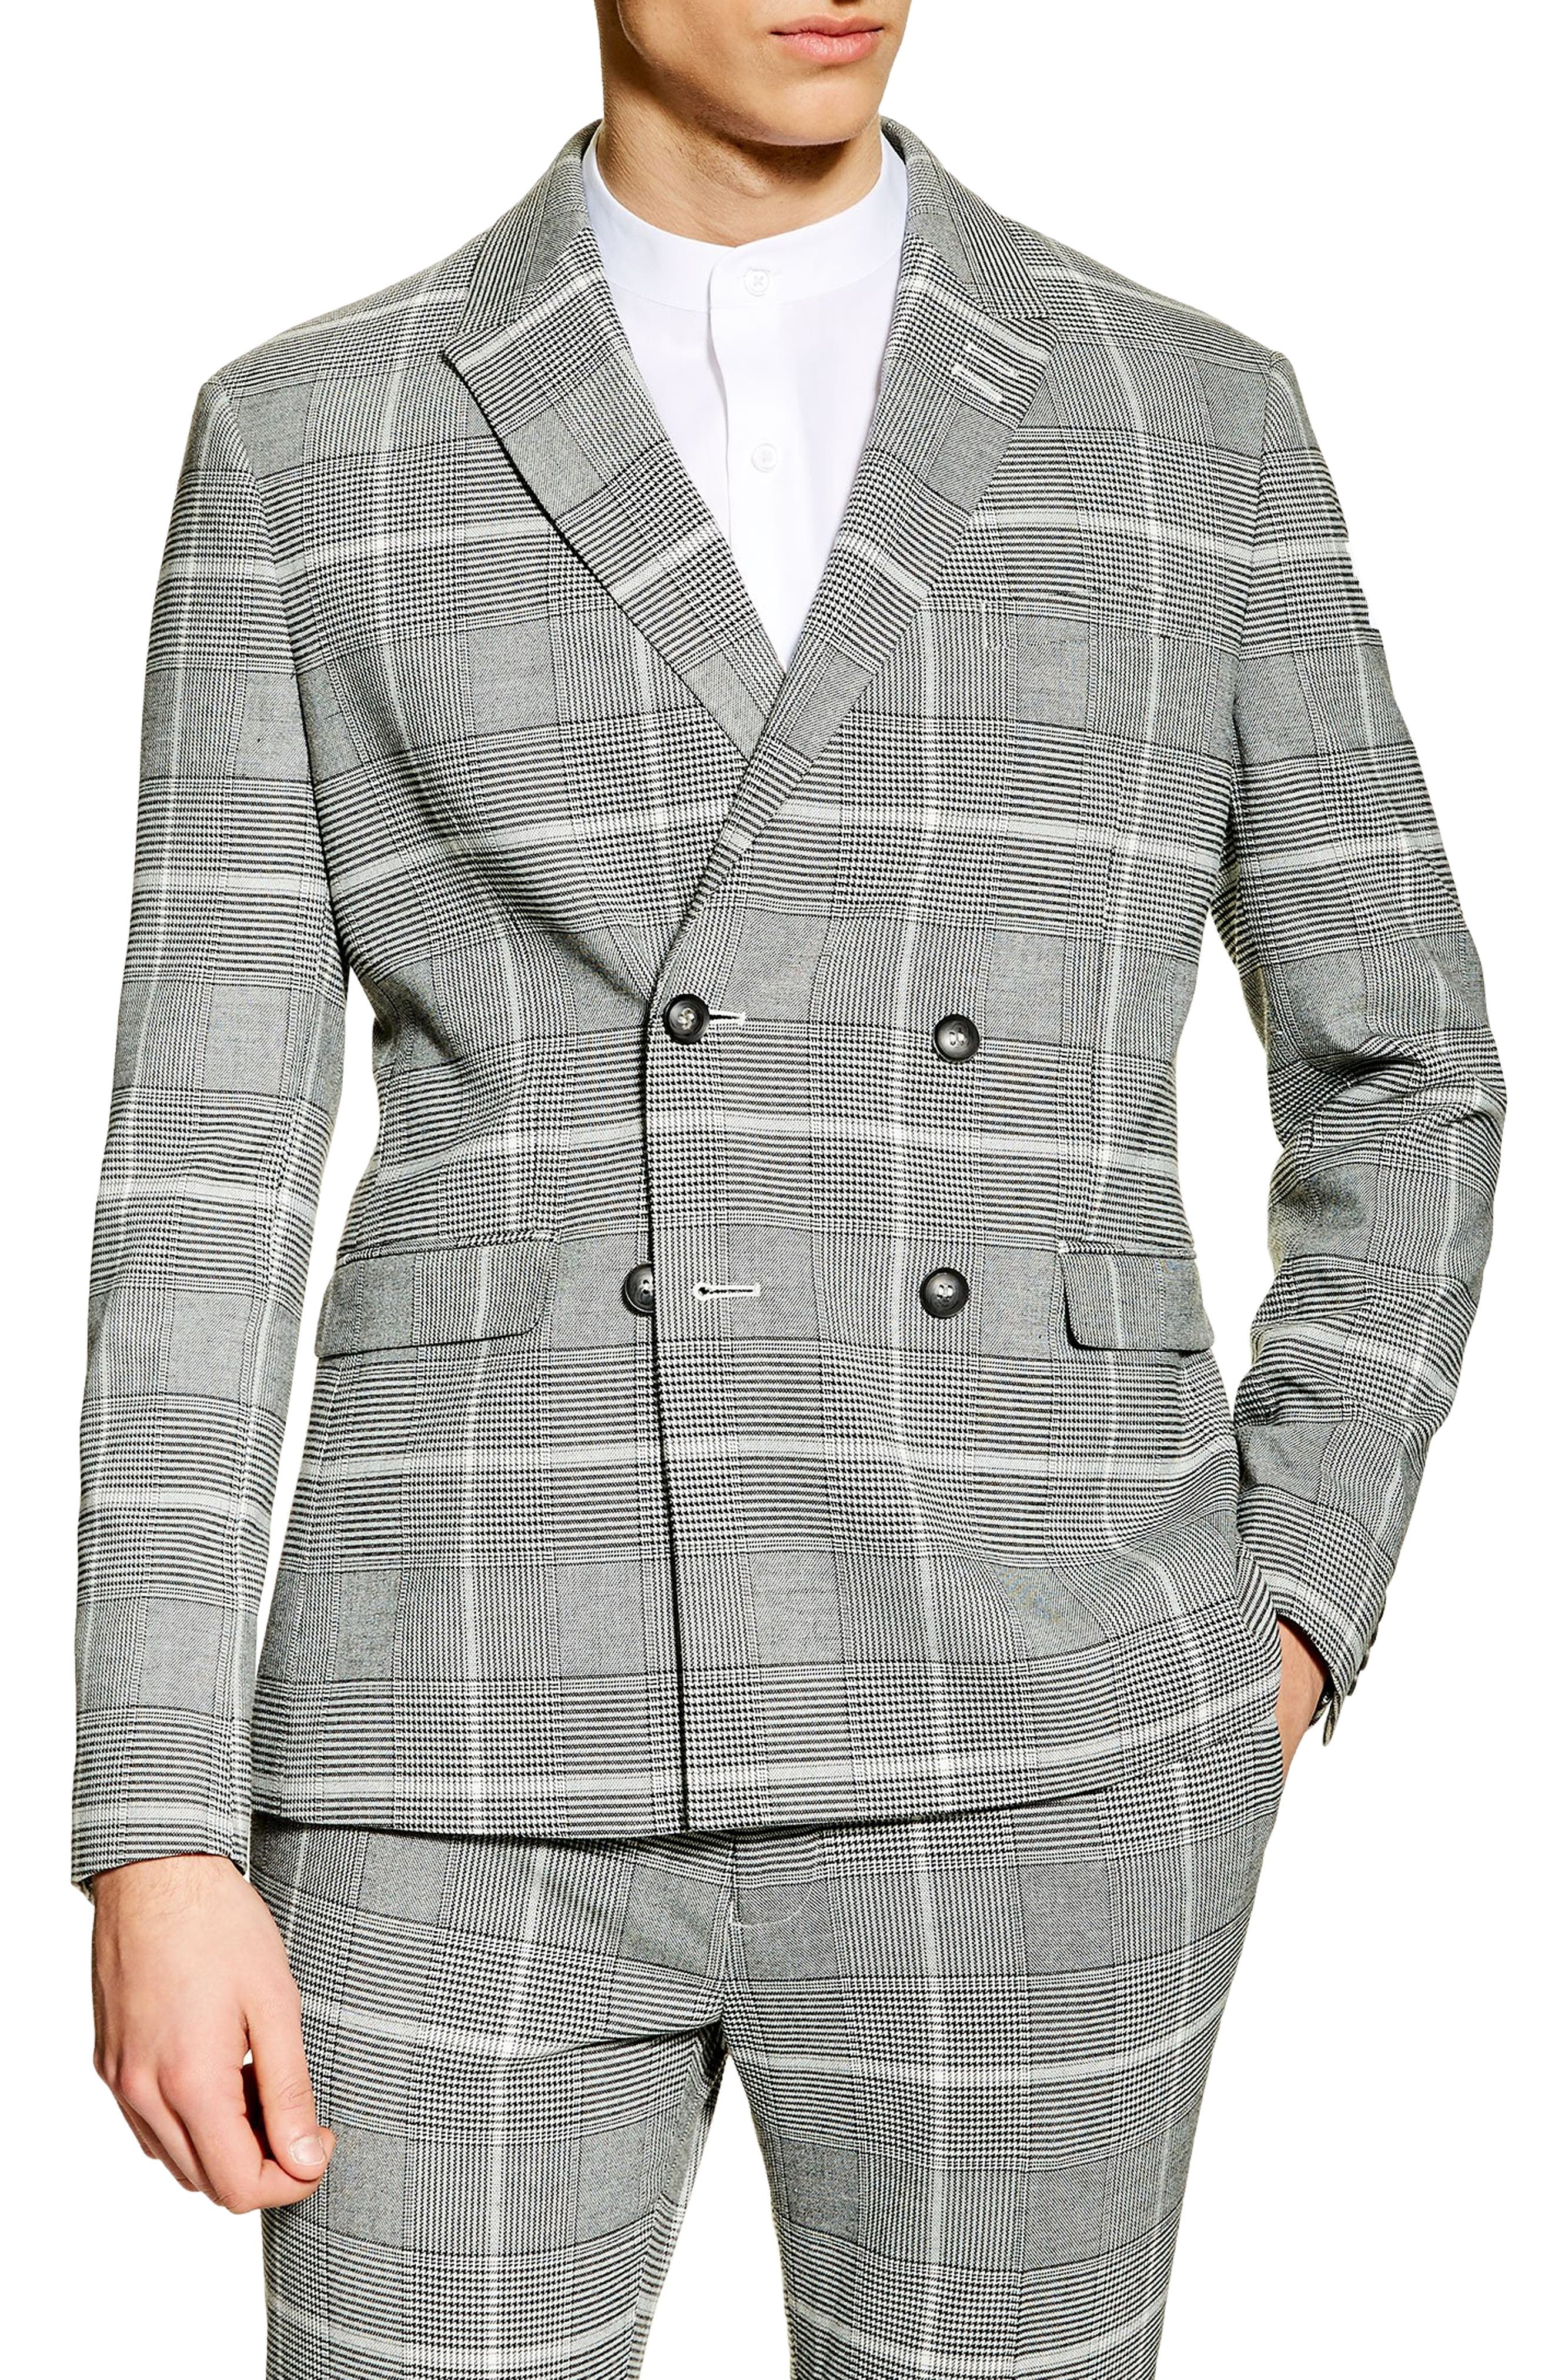 TOPMAN Skinny Fit Check Suit Jacket, Main, color, 020